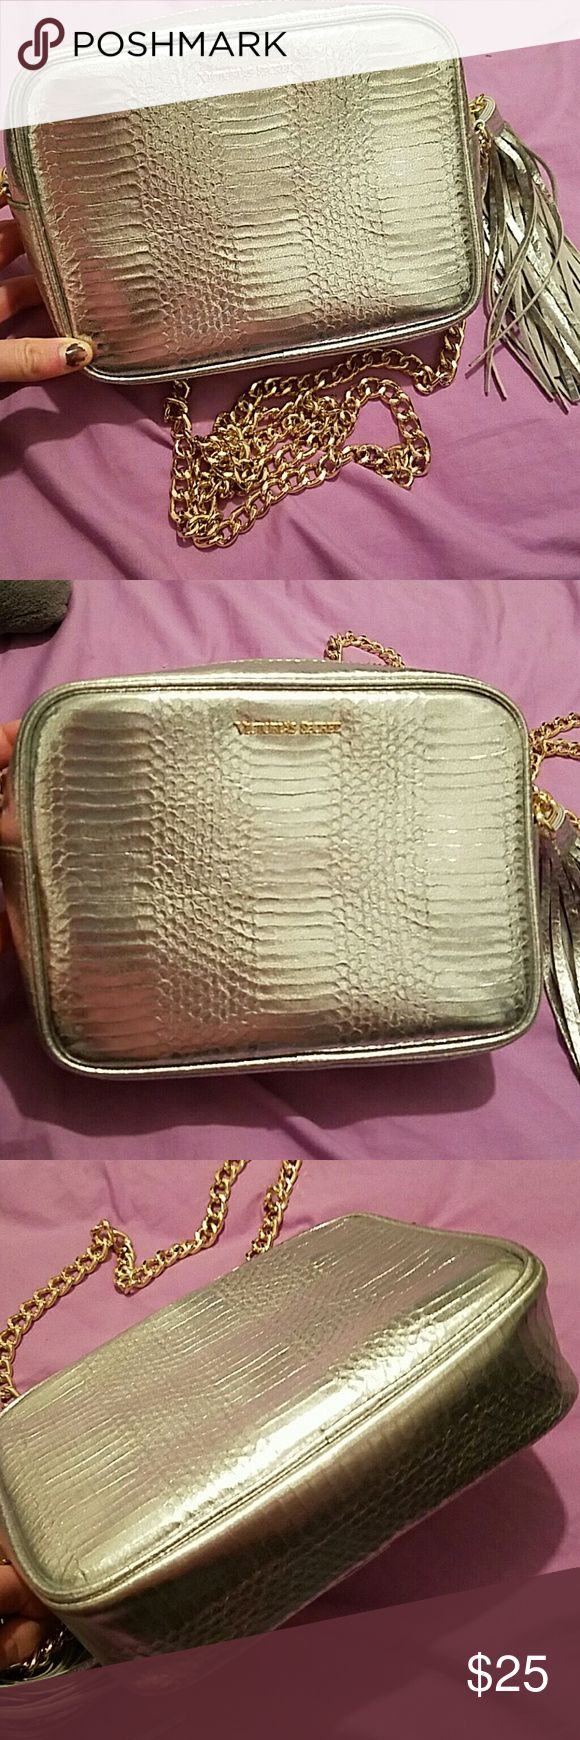 Victora Secret Purse 2016 VS fashion show exclusive purse. Brand new never used, only open to take pictures. Silver with tassel a day gold chain strap Victoria's Secret Bags